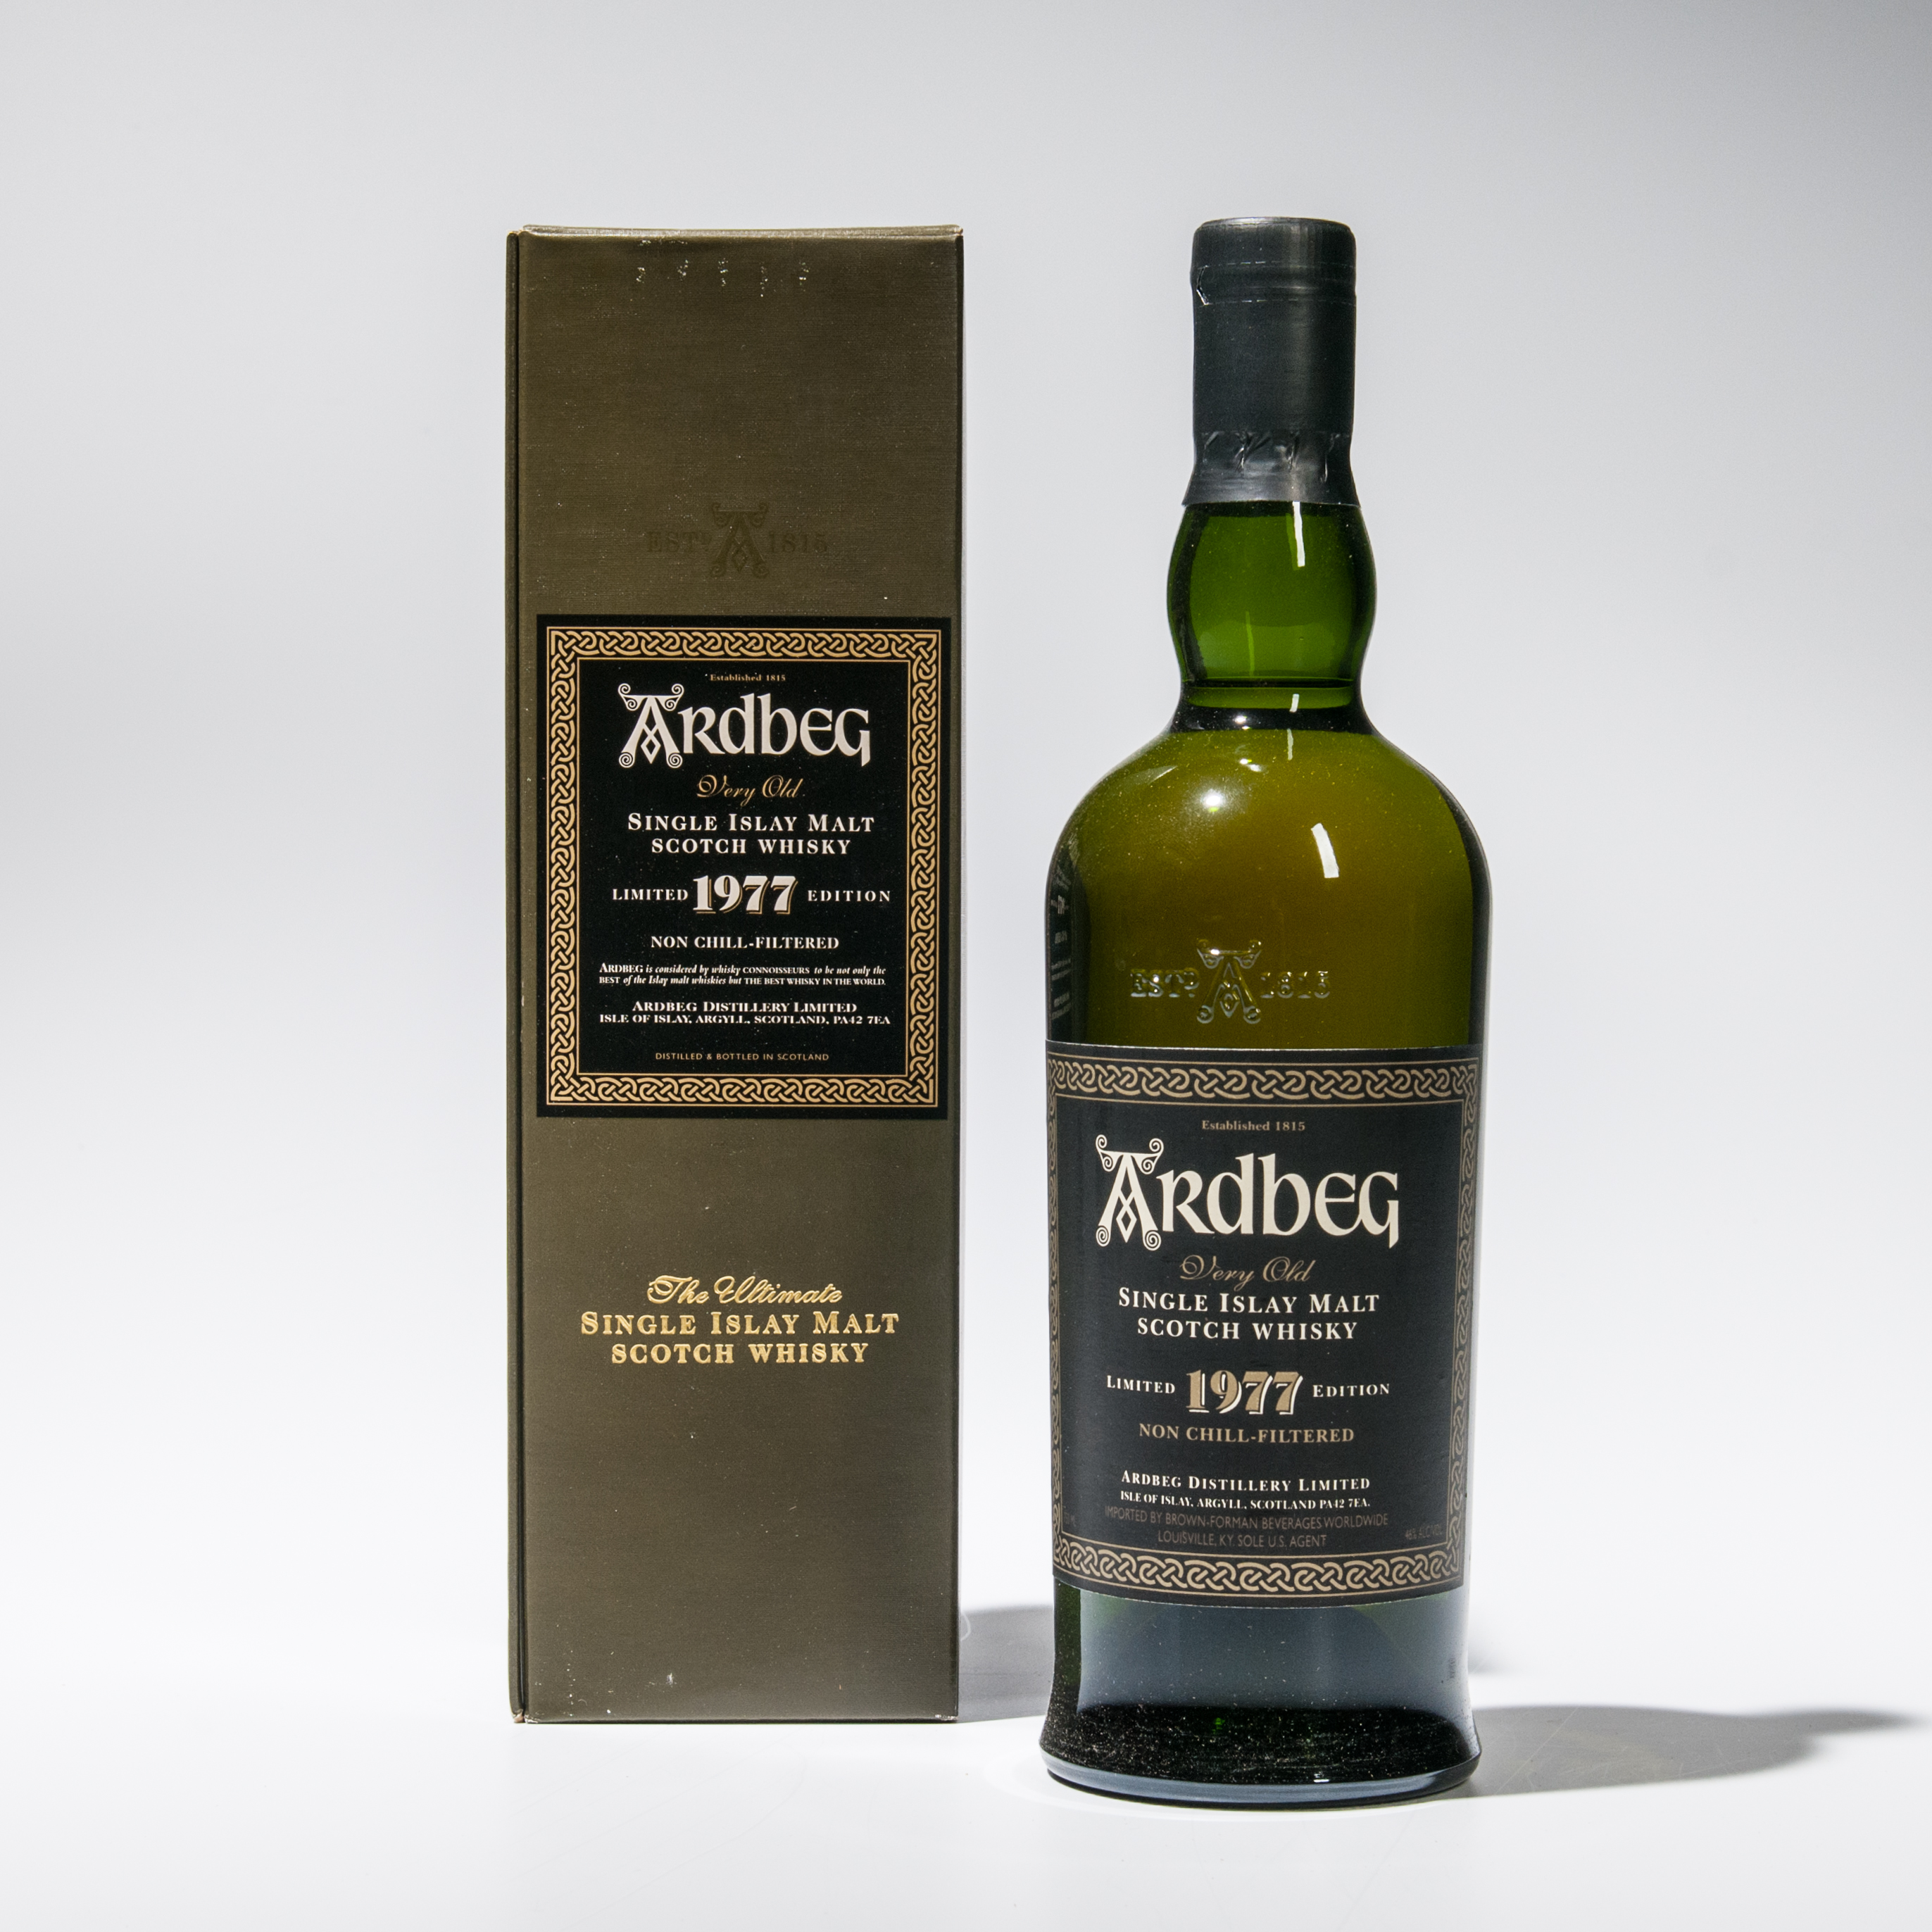 Ardbeg 1977 (Lot 1739, Estimate: $400-500)